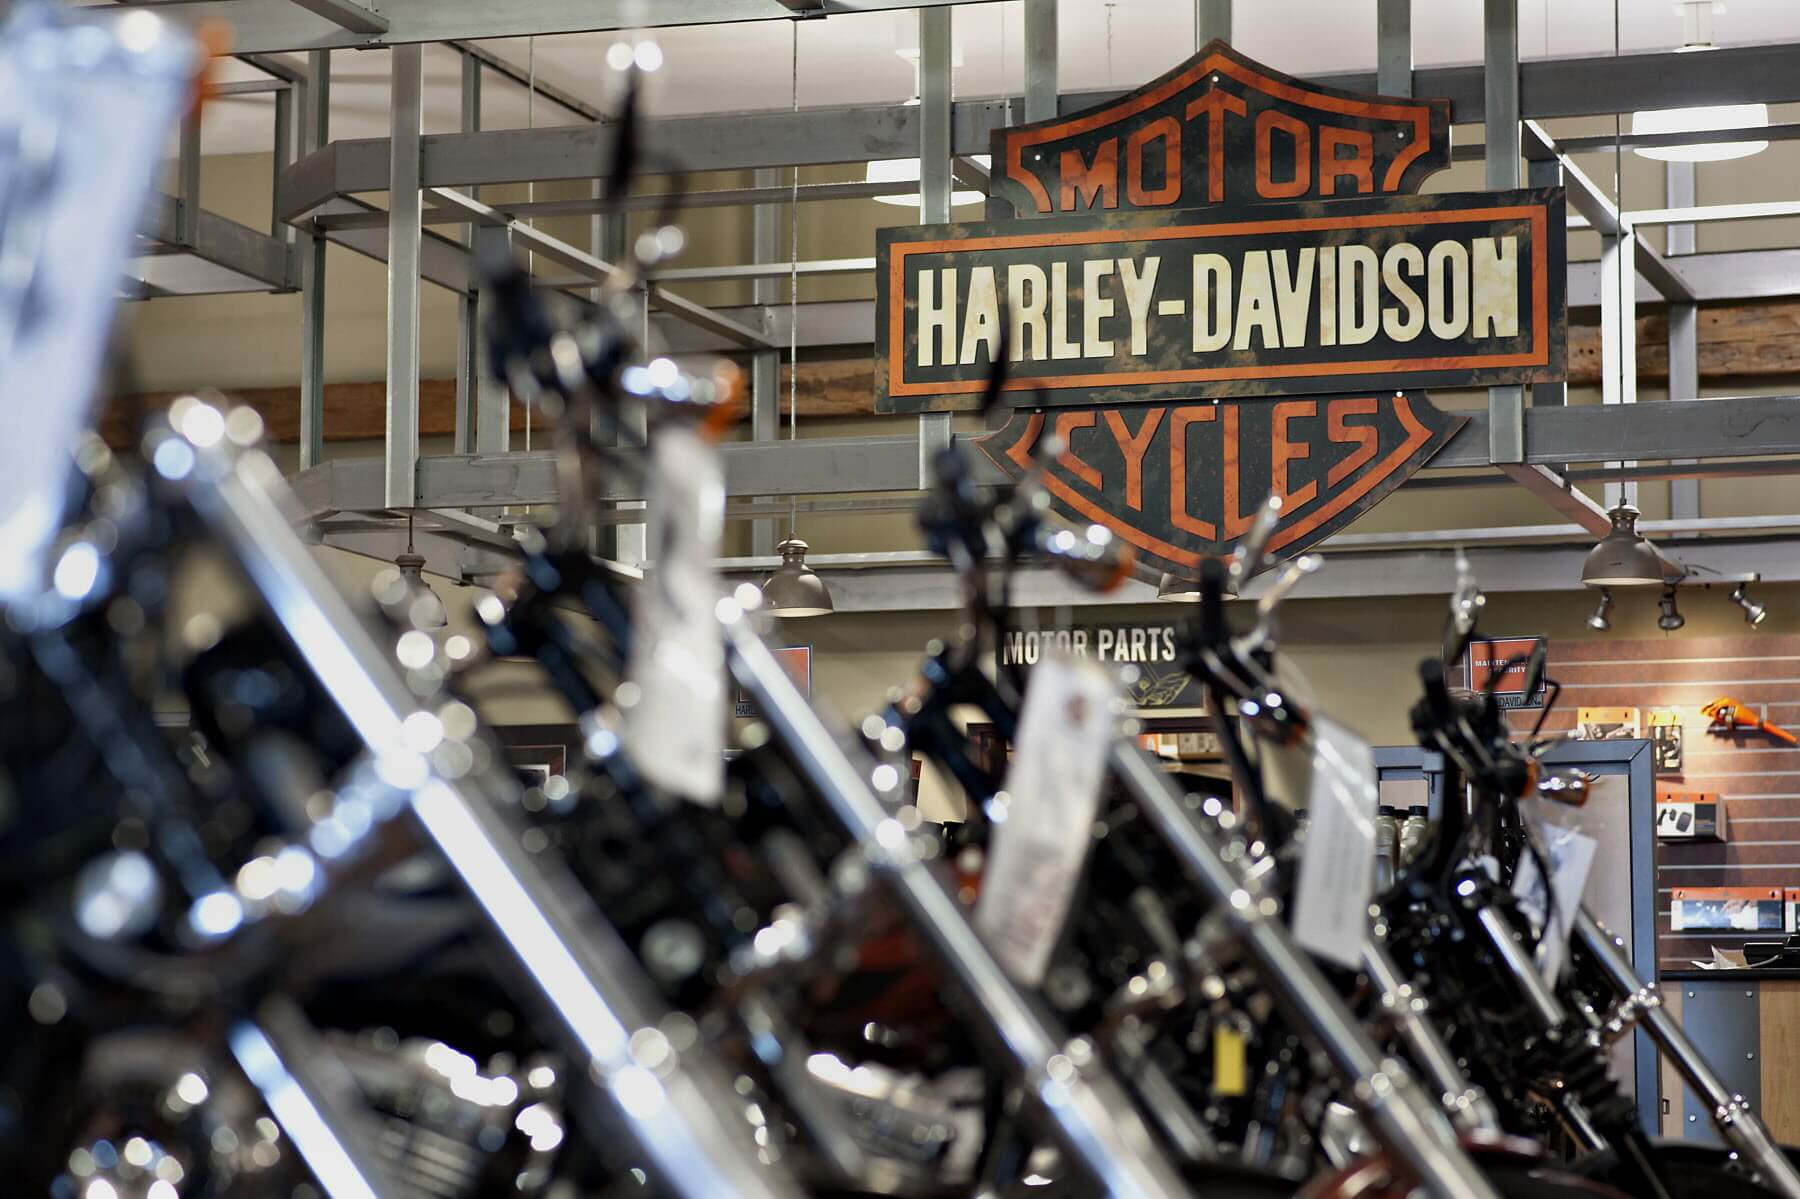 Things that any Harley Davidson fan should know